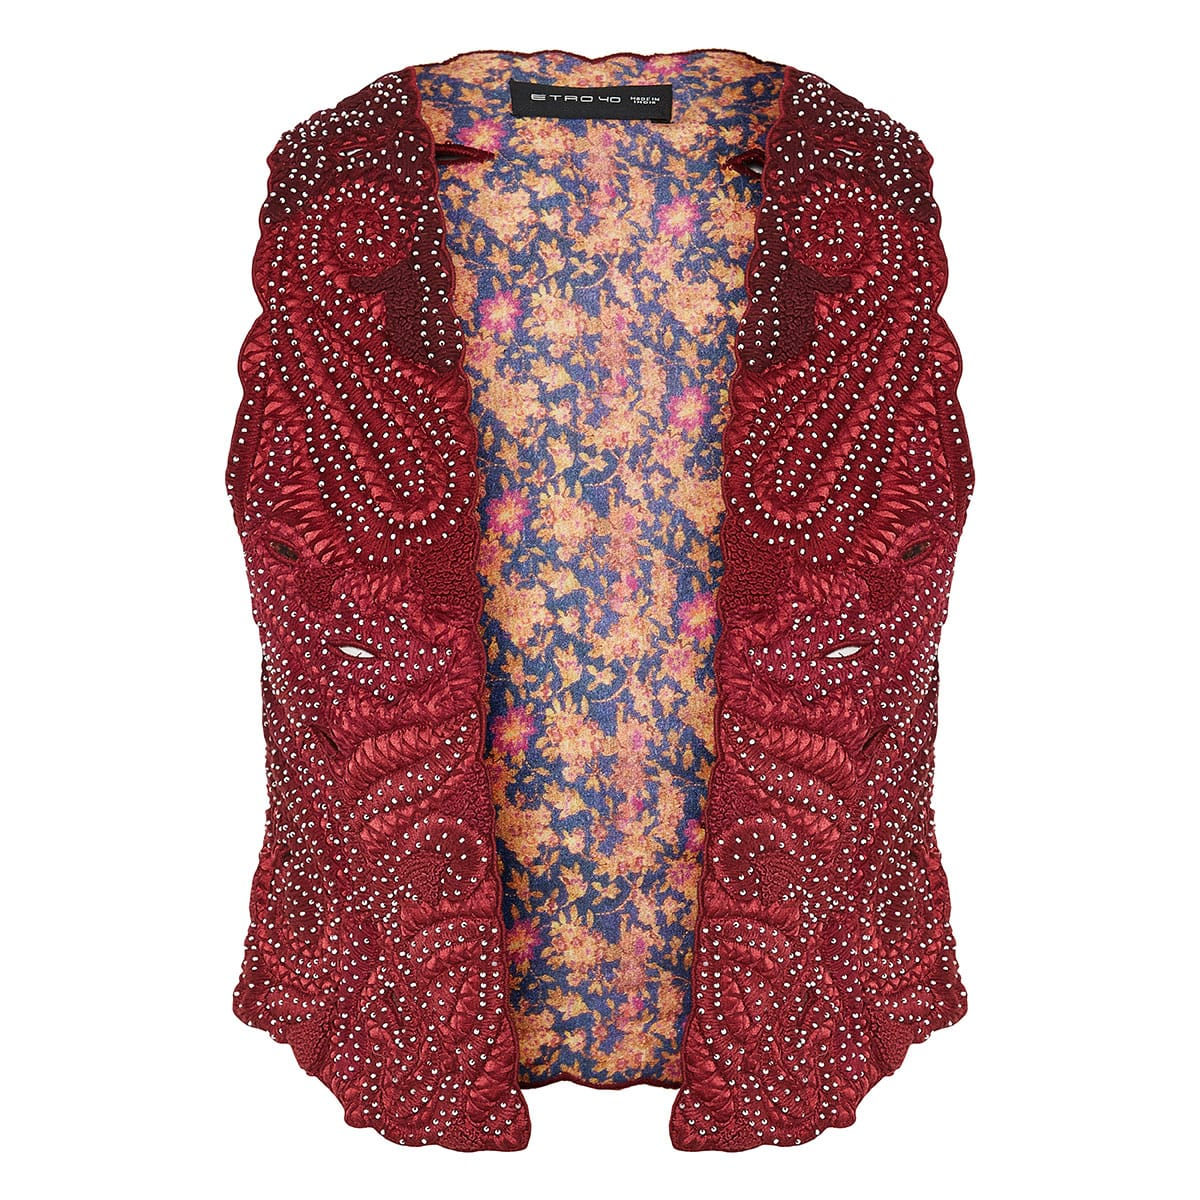 Embroidered vest with beads